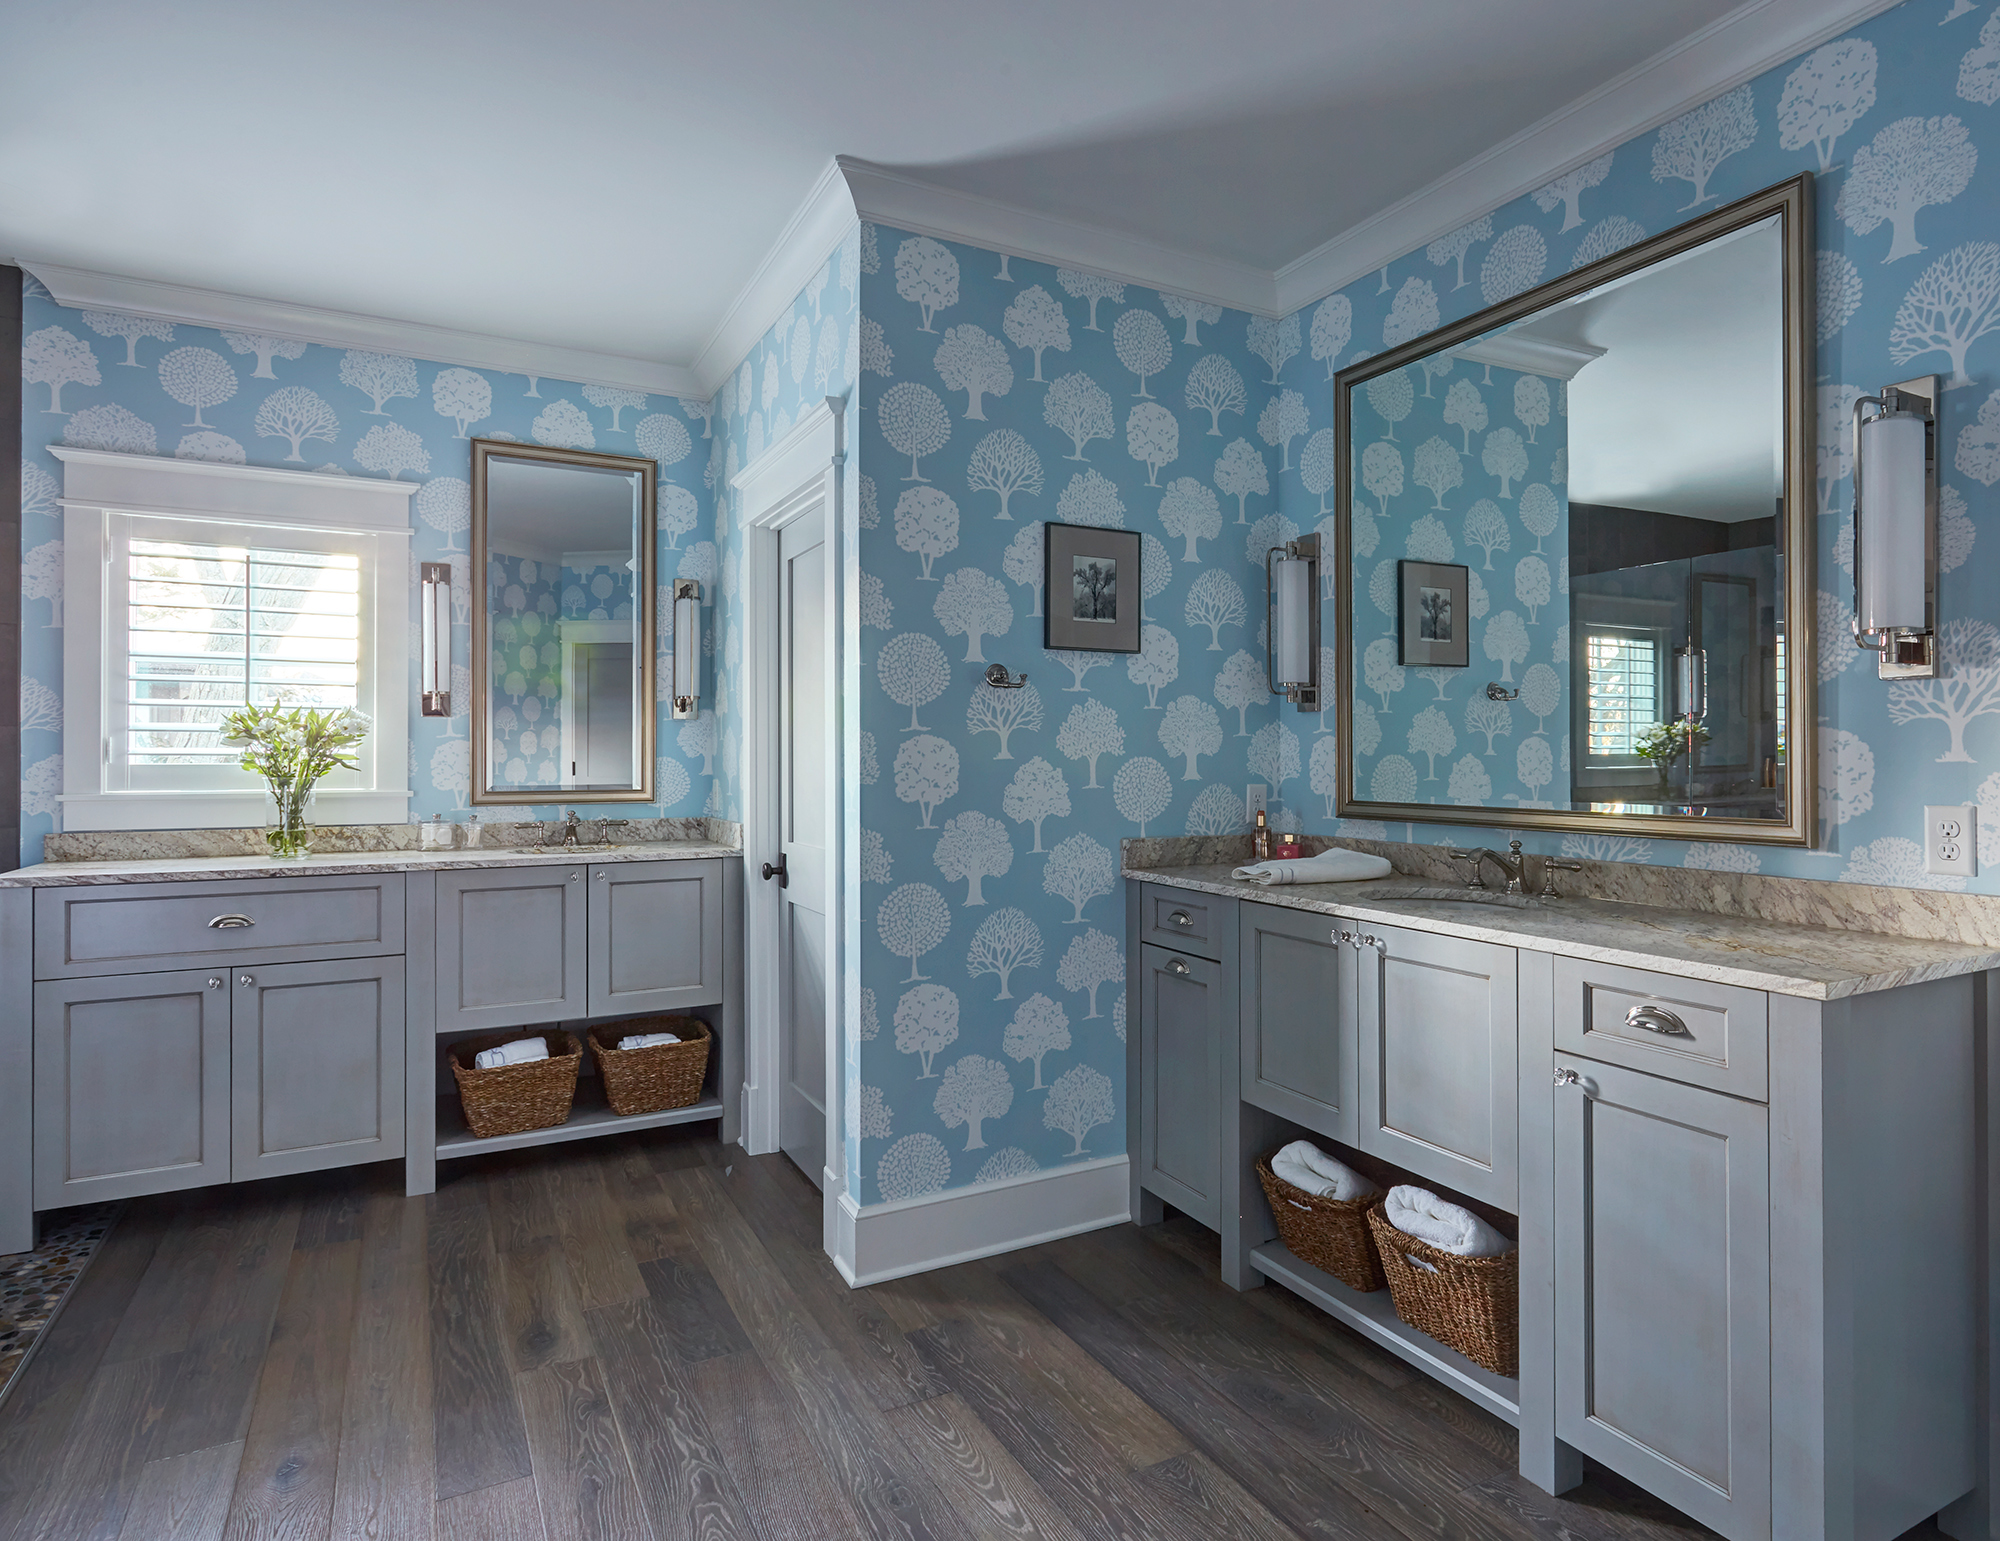 Painted master bathroom cabinets in Estate Gray with Walnut glaze by Showplace Cabinetry - view 2